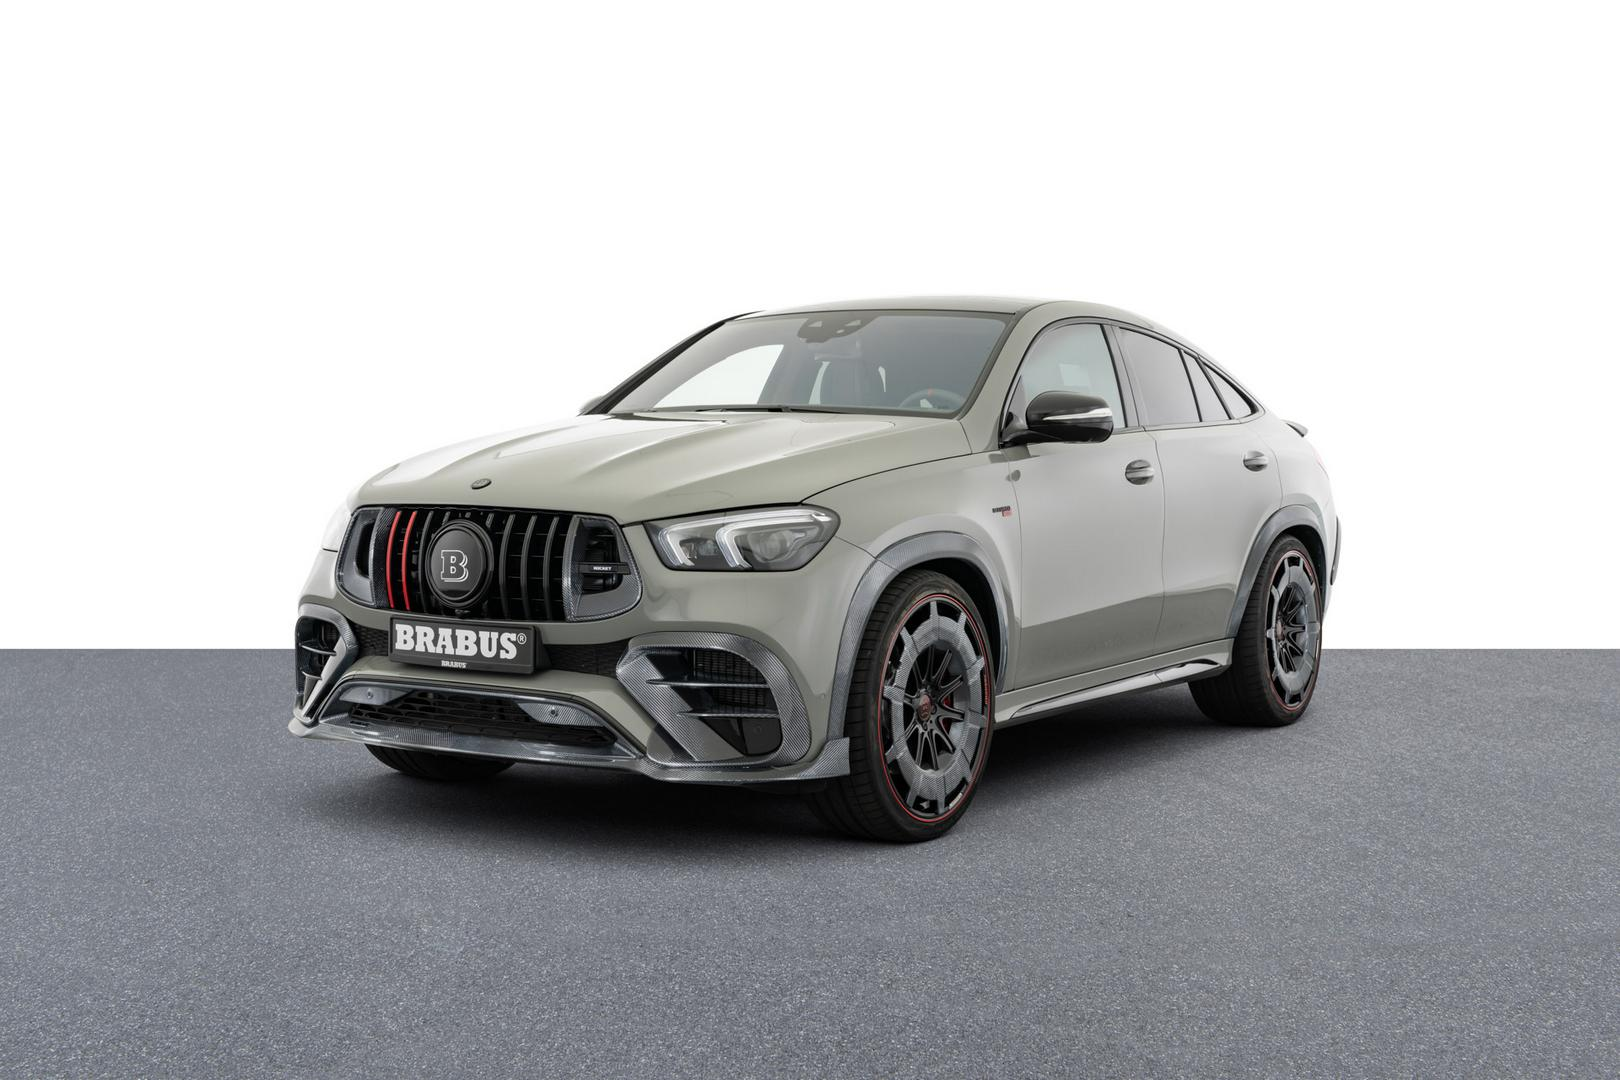 Brabus 900 Rocket: The Most Expensive Mercedes GLE in the World